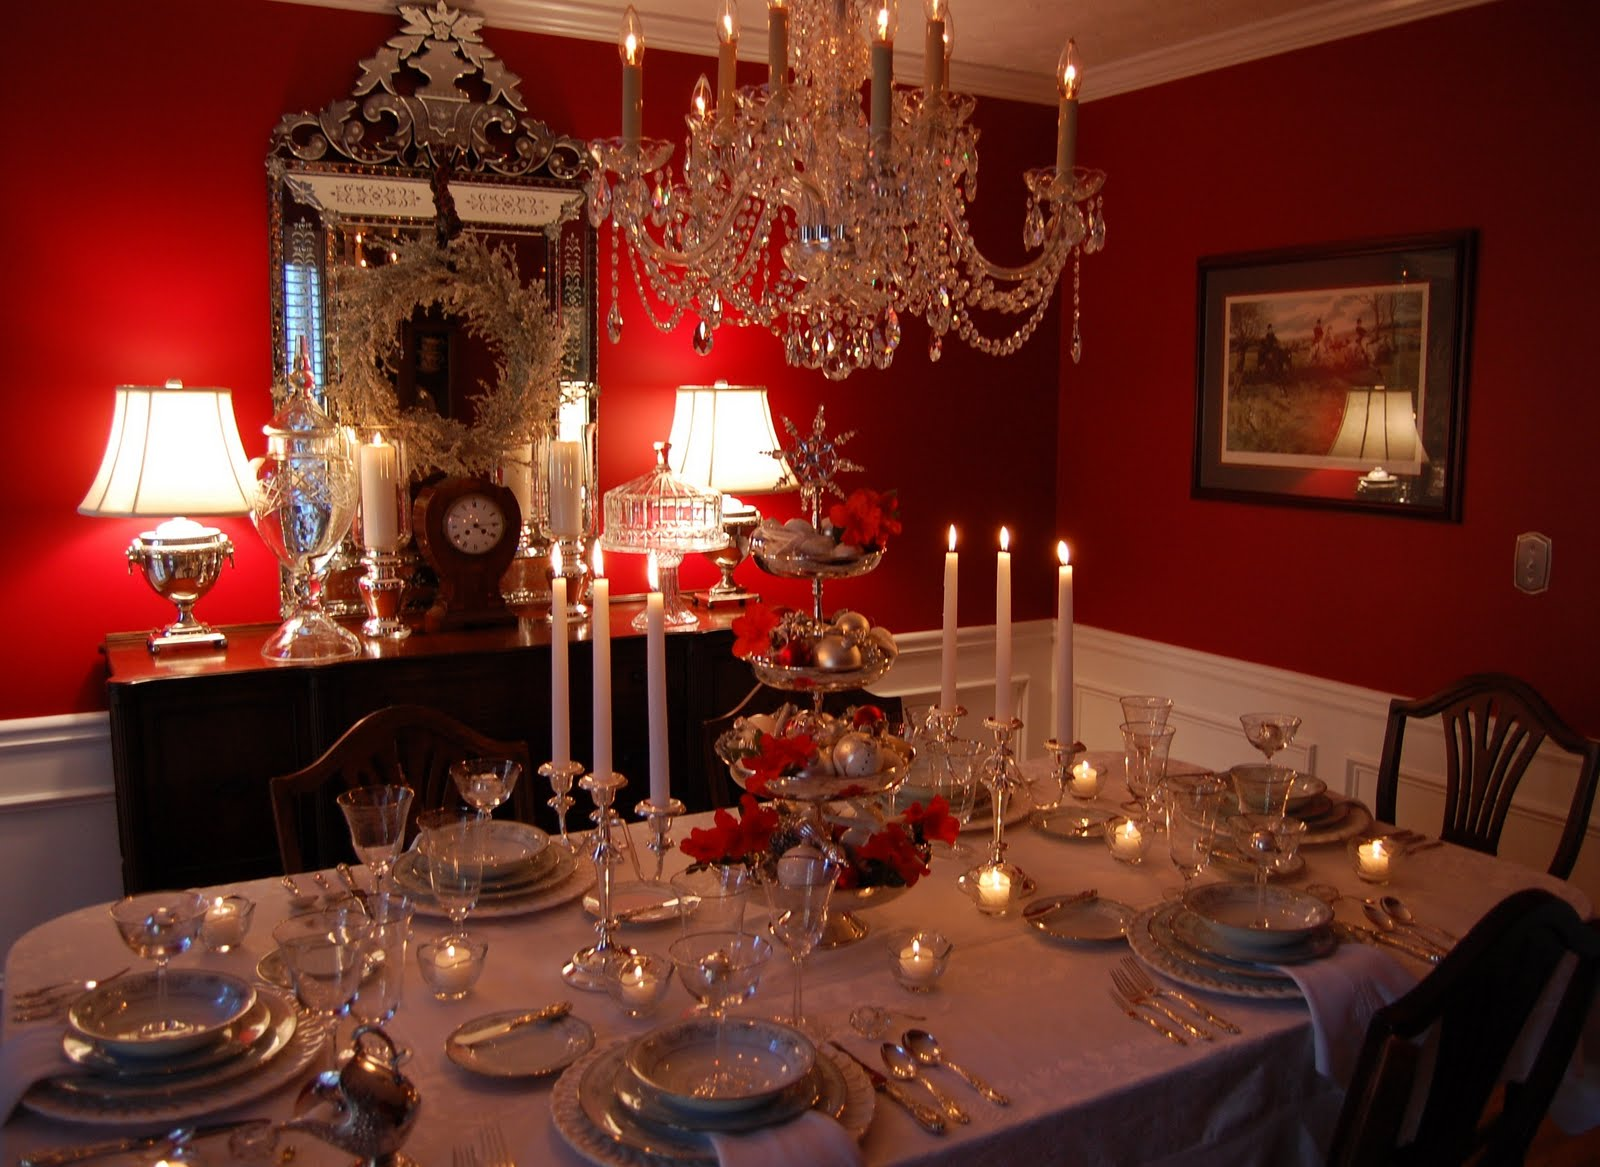 Interesting Dining Room With Neat Lighting Table Decor under Chandelier